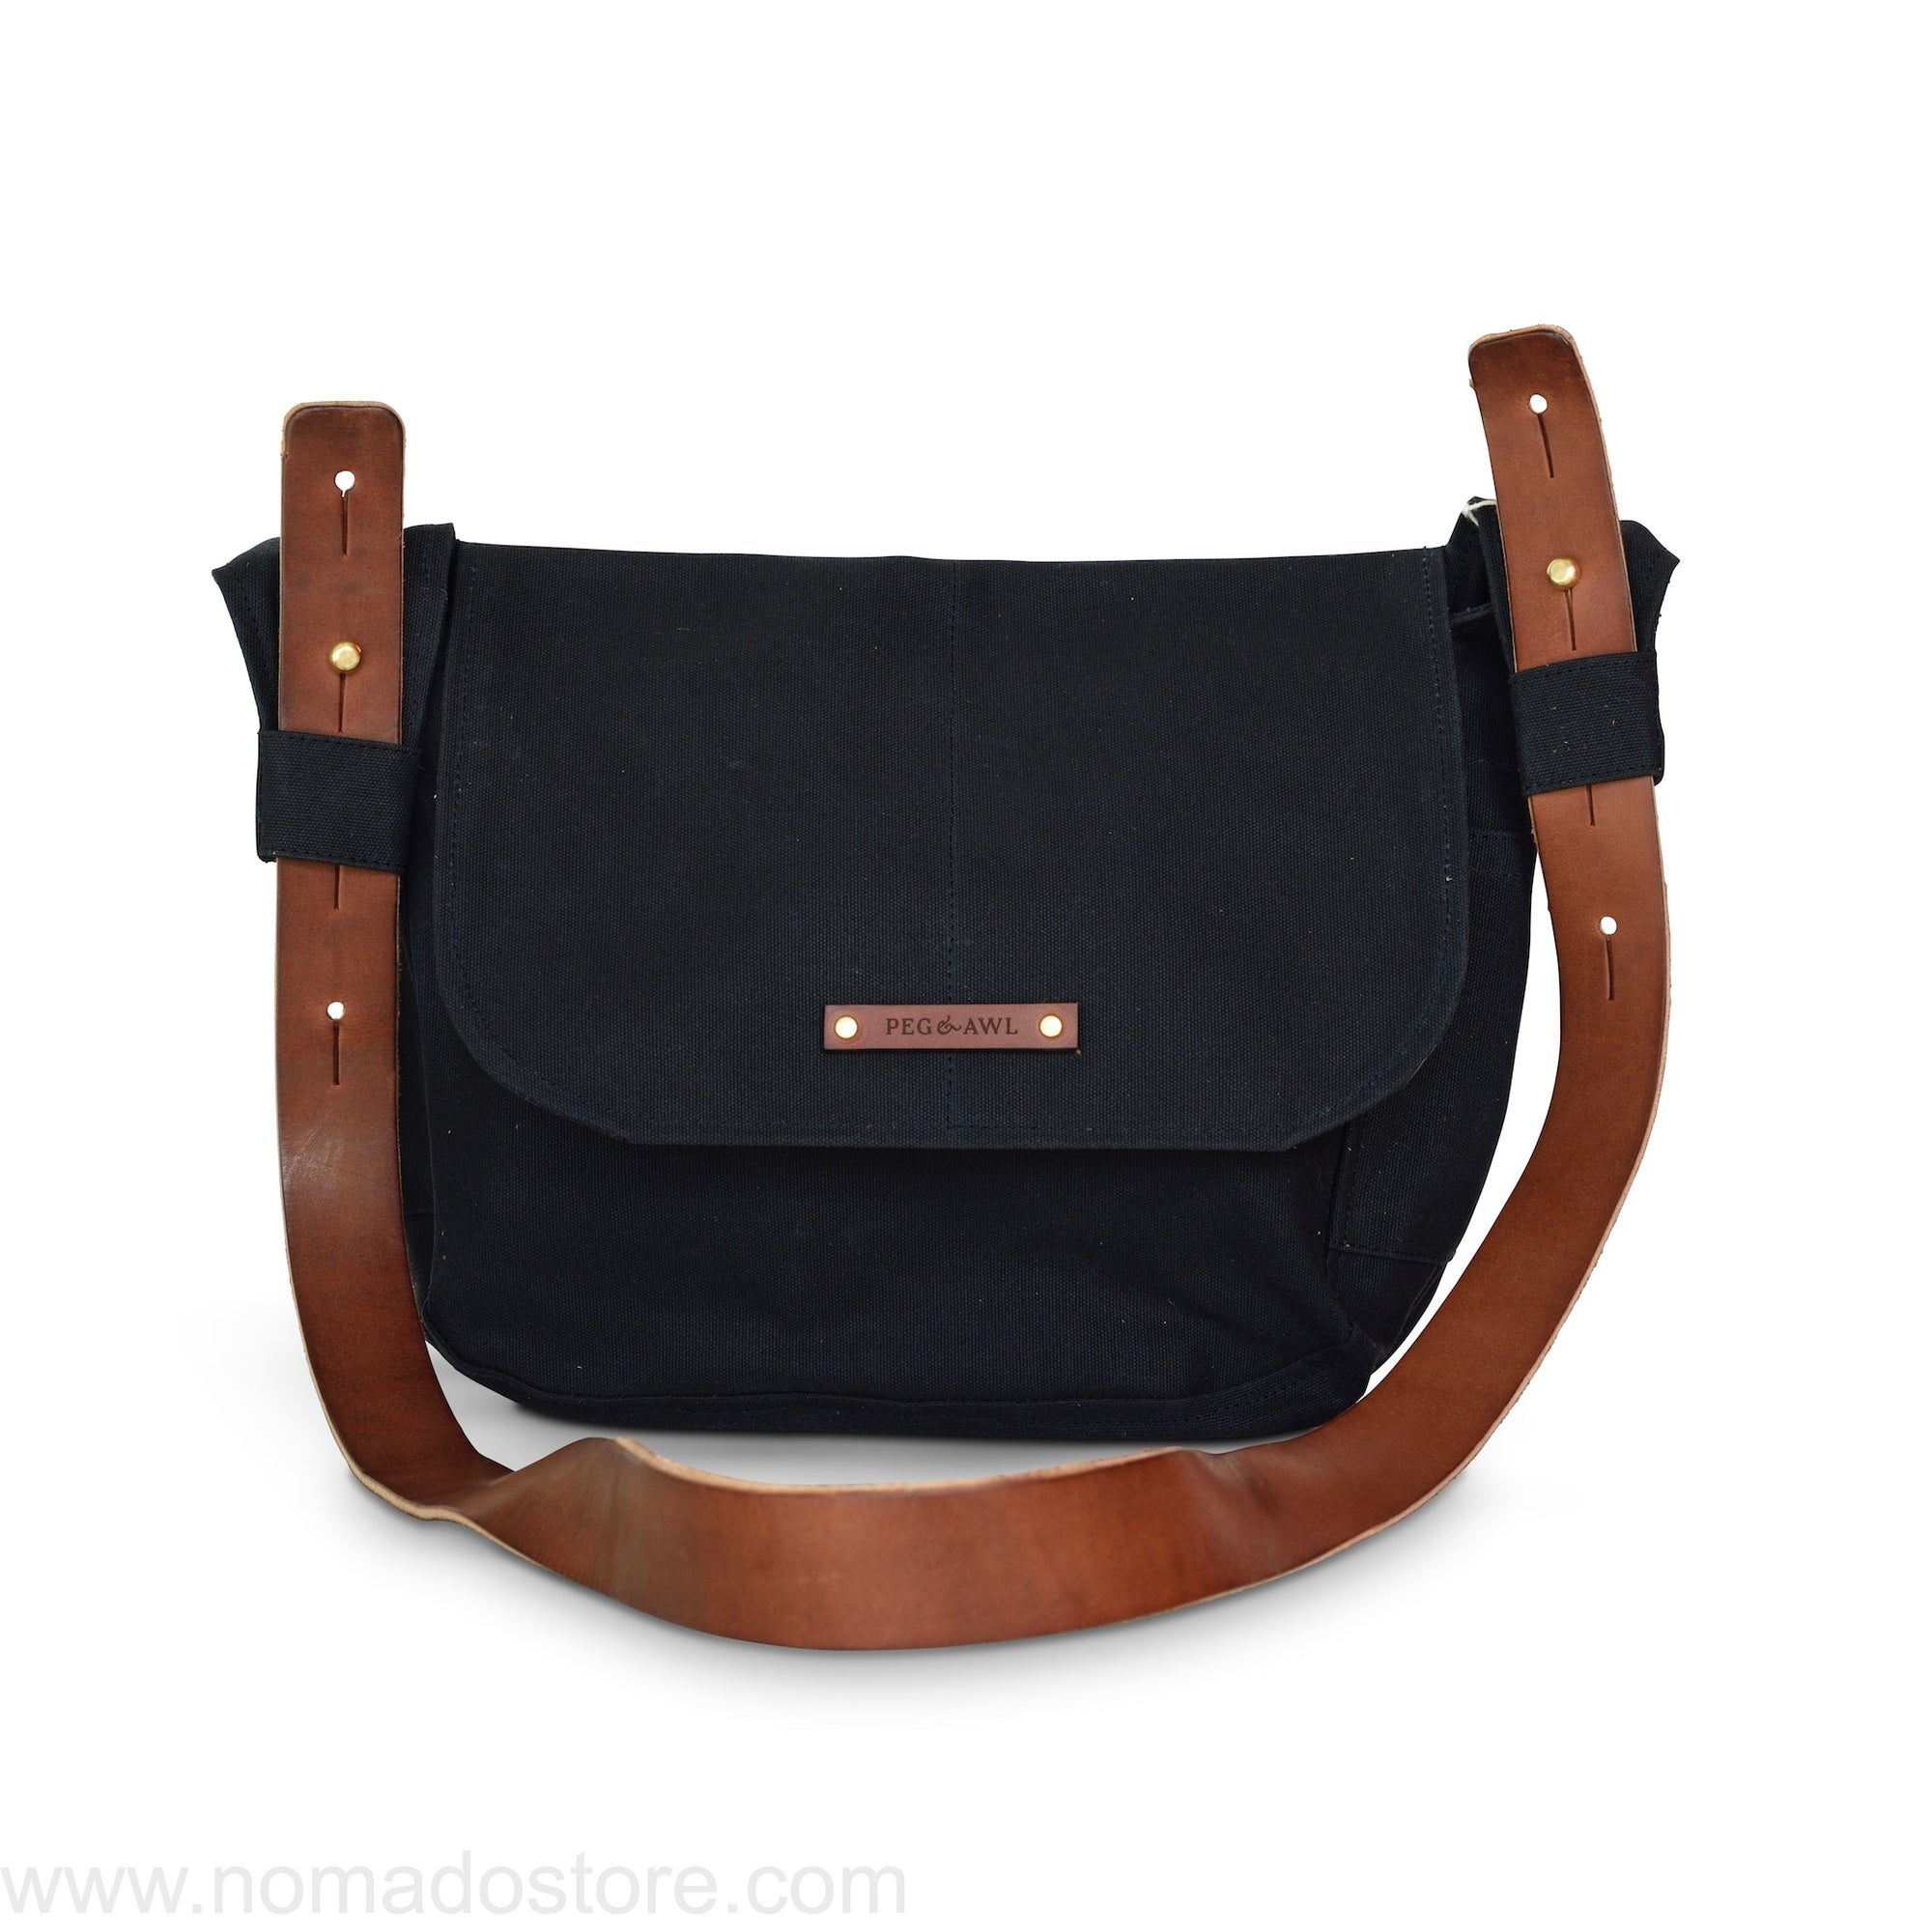 Peg and Awl The Finch Satchel - Coal - NOMADO Store